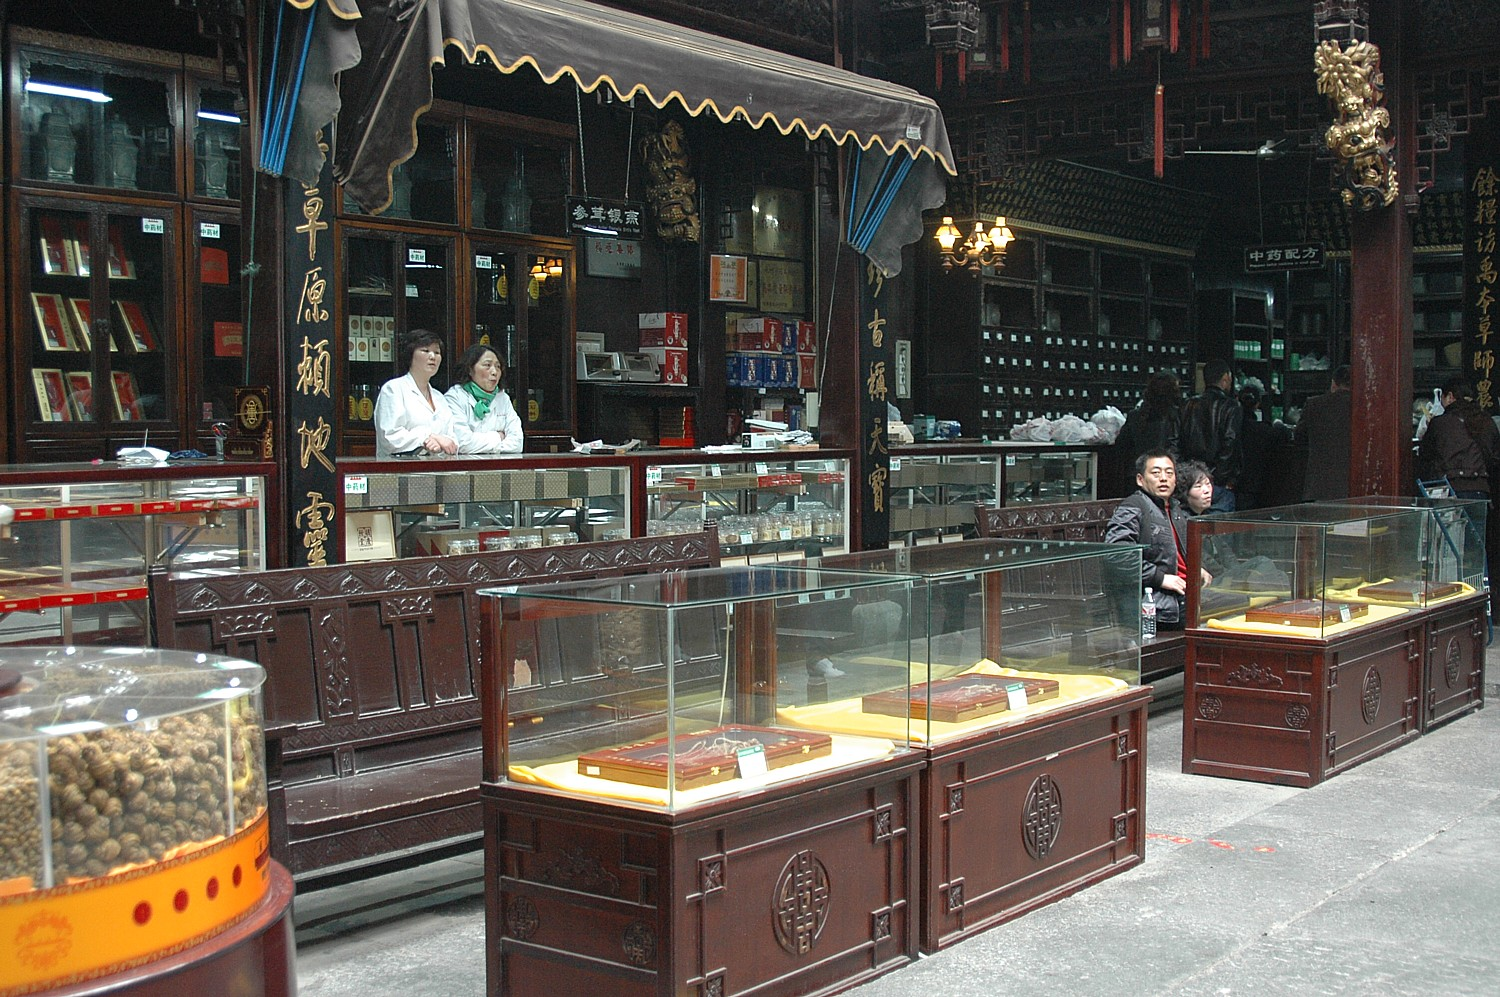 The Hu Qingyutang Chinese Pharmacy founded in 1874 by Hu Xueyan and still operating in Hangzhou, China © 2016 Karen Rubin/goingplacesfarandnear.com